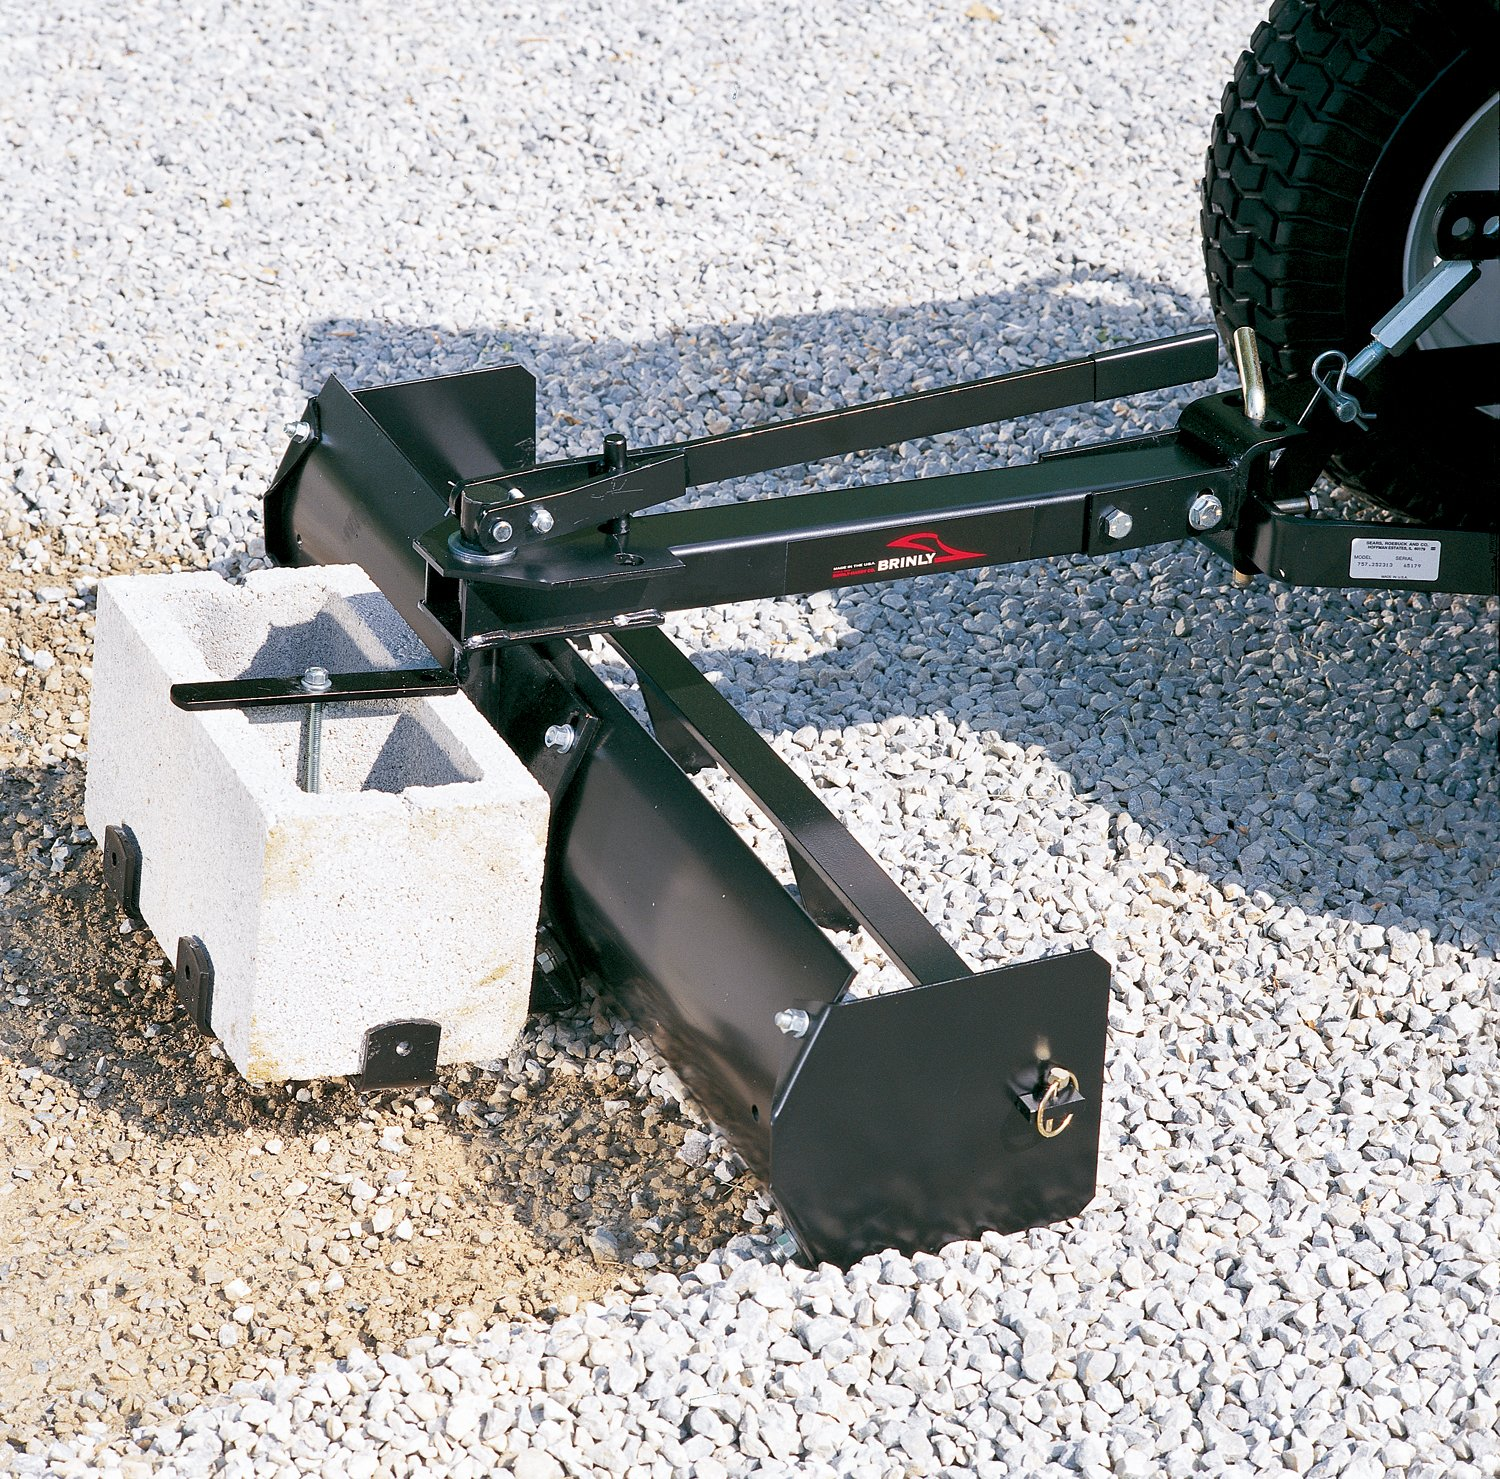 craftsman garden tractor attachments. amazon.com : brinly bs 38bh sleeve hitch tow behind box scraper, 38 inch craftsman garden tractor attachments i